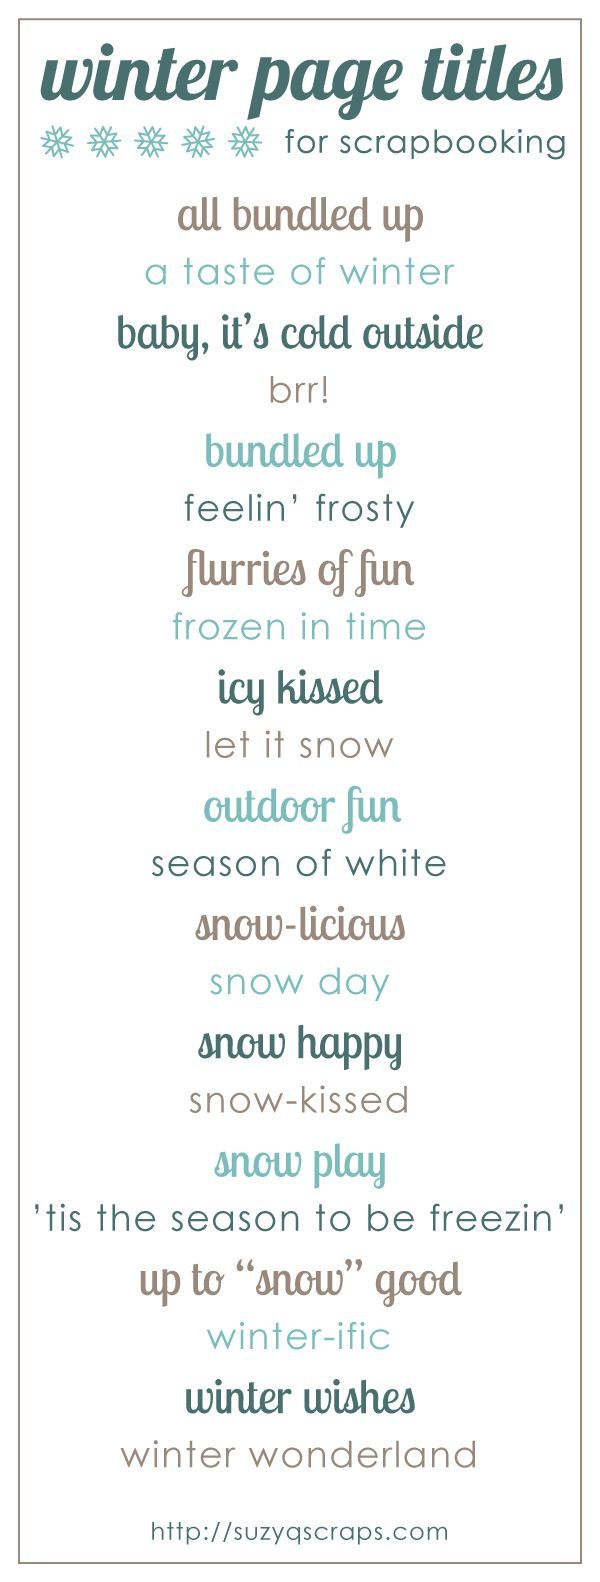 Baby scrapbook ideas quotes - Winter Scrapbook Page Titles